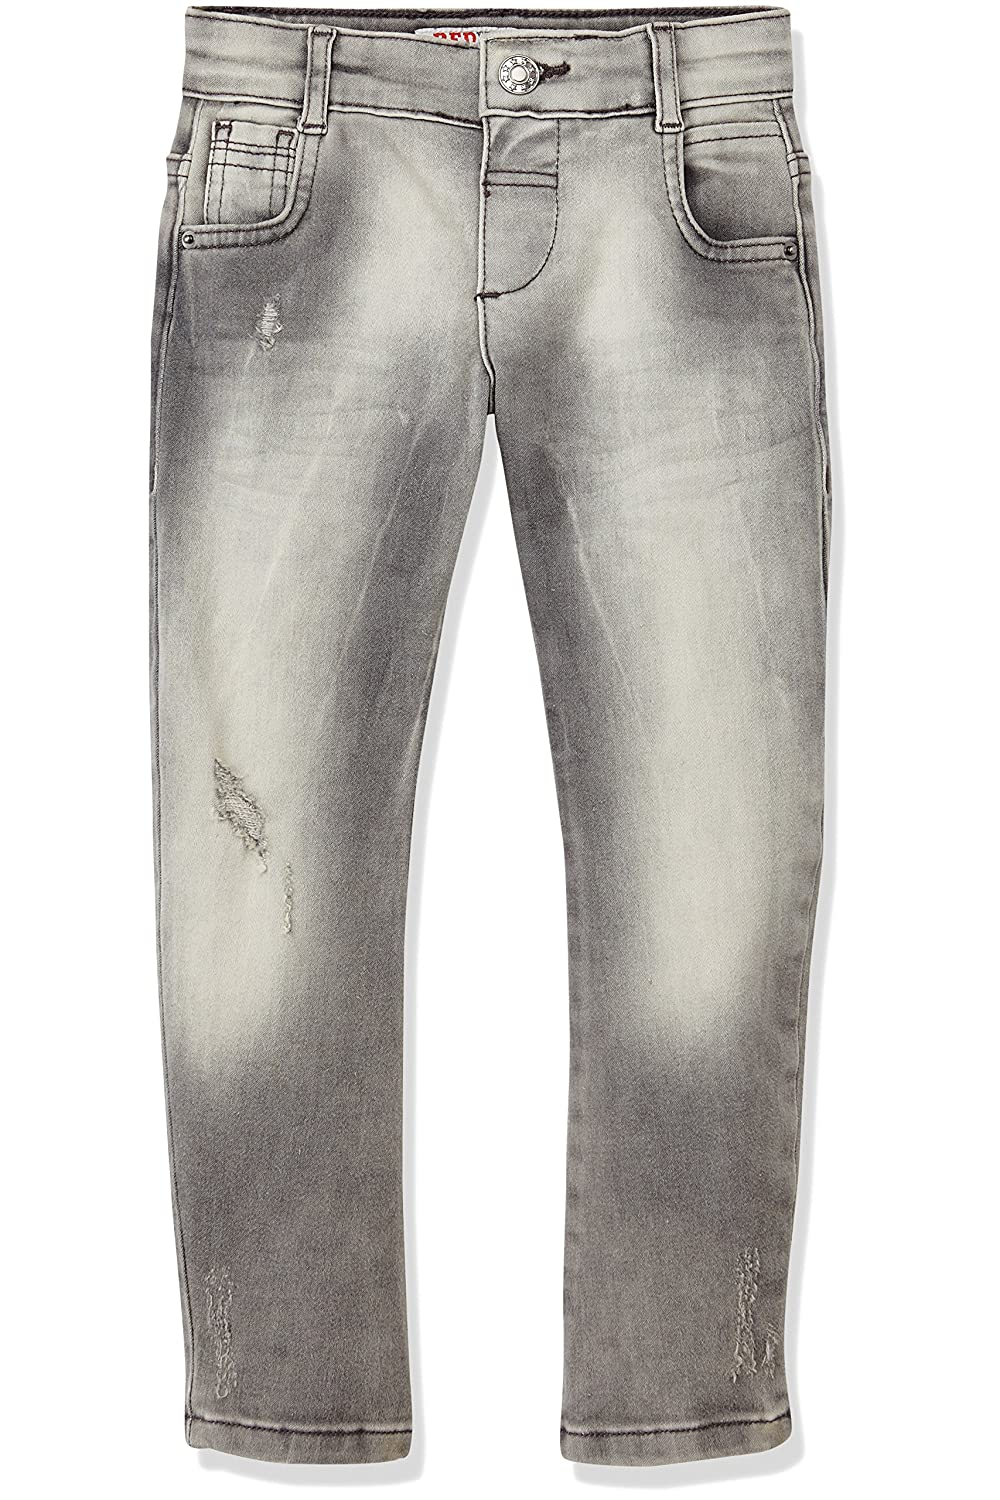 RED WAGON Jeans Bambino a Sigaretta 7366C